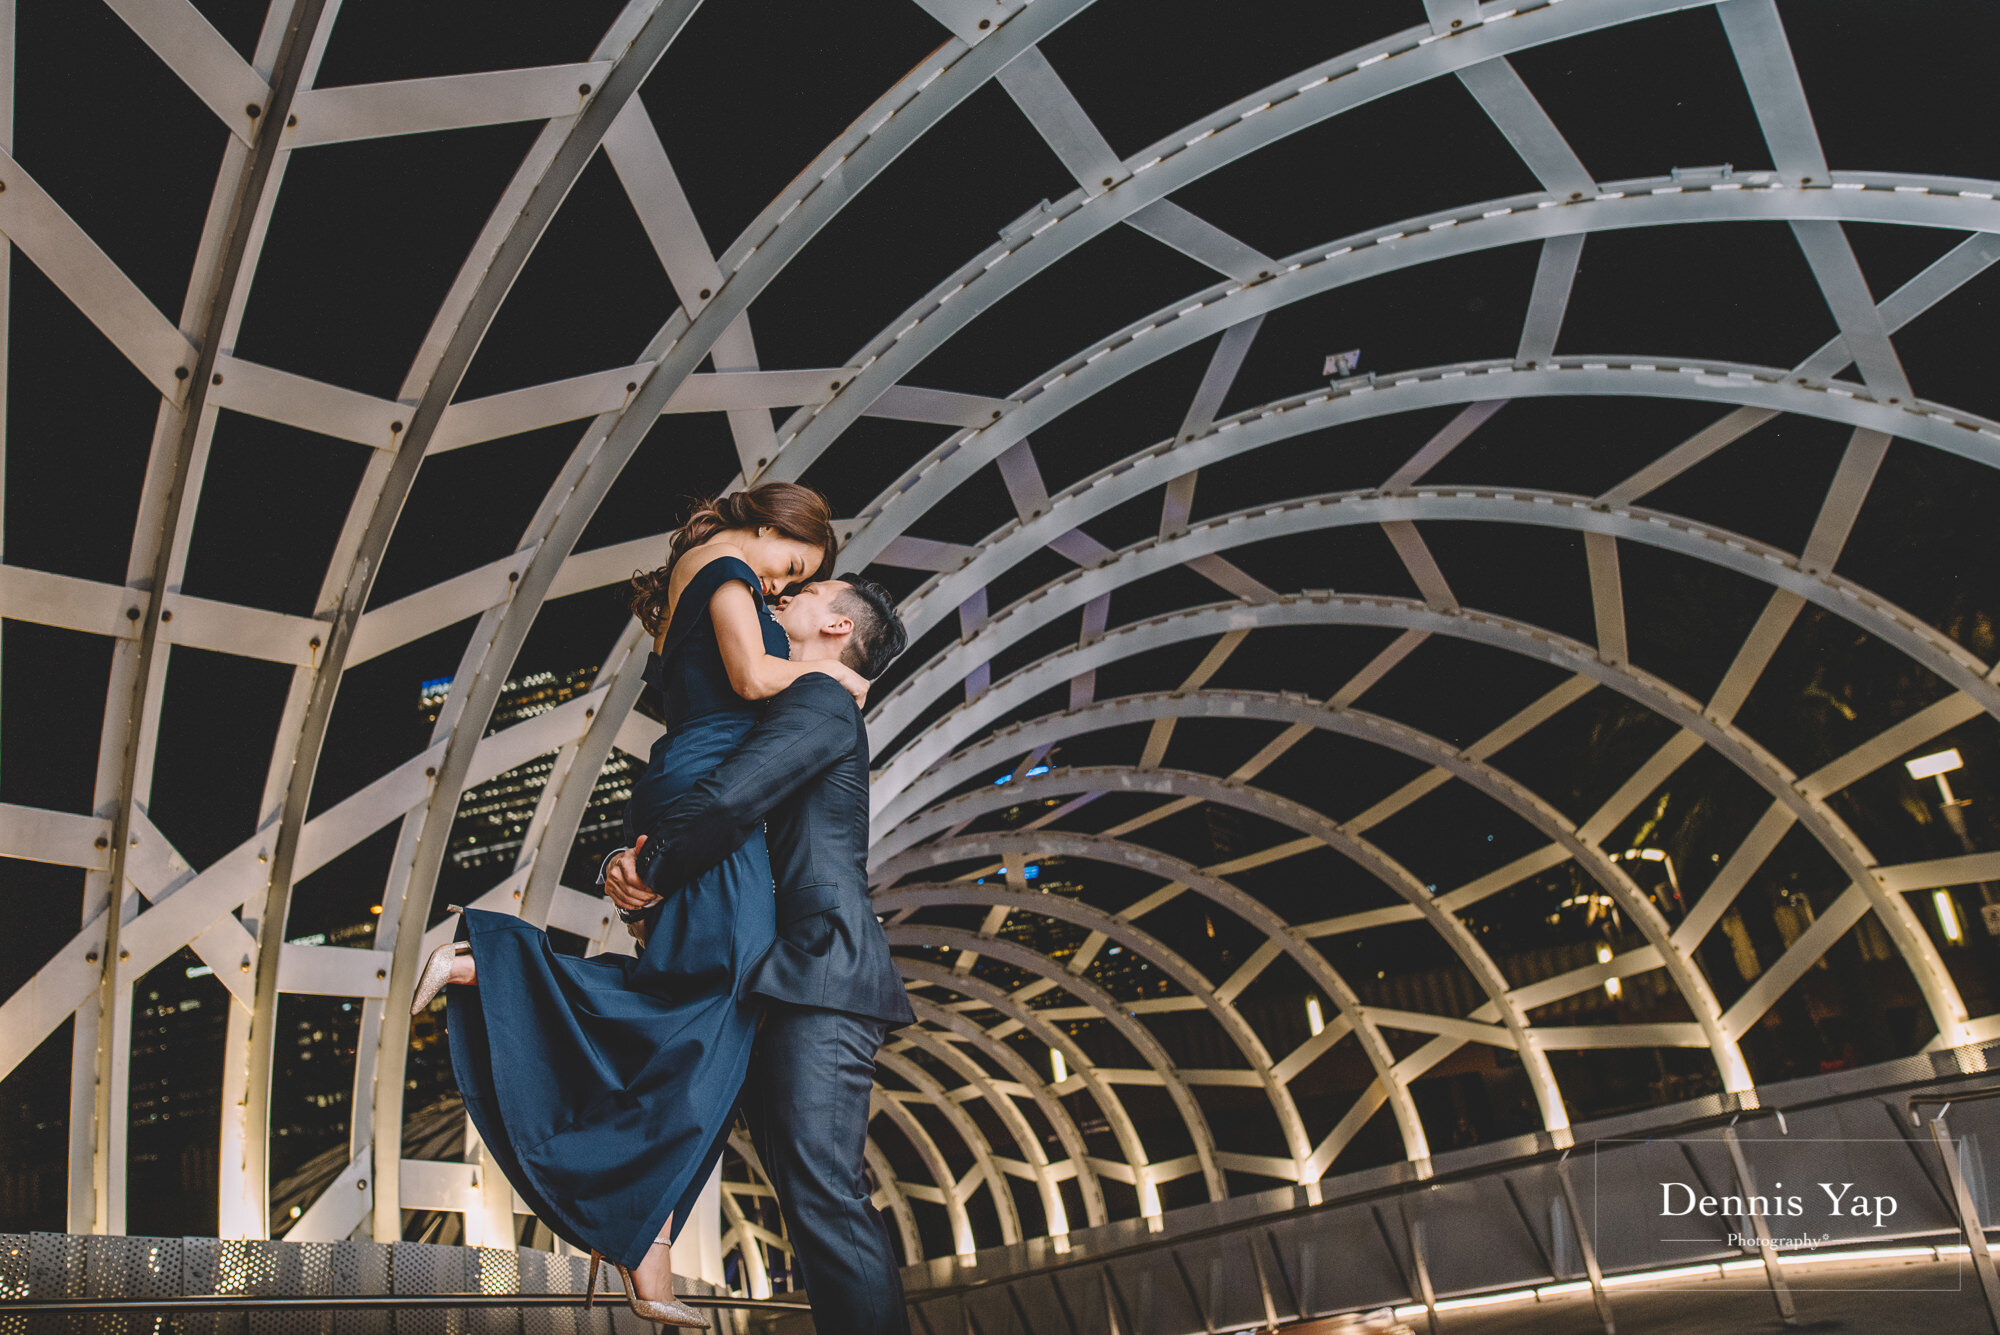 kevin junie melbourne pre wedding lifestyle natural dennis yap photography malaysia top wedding photographer-21.jpg